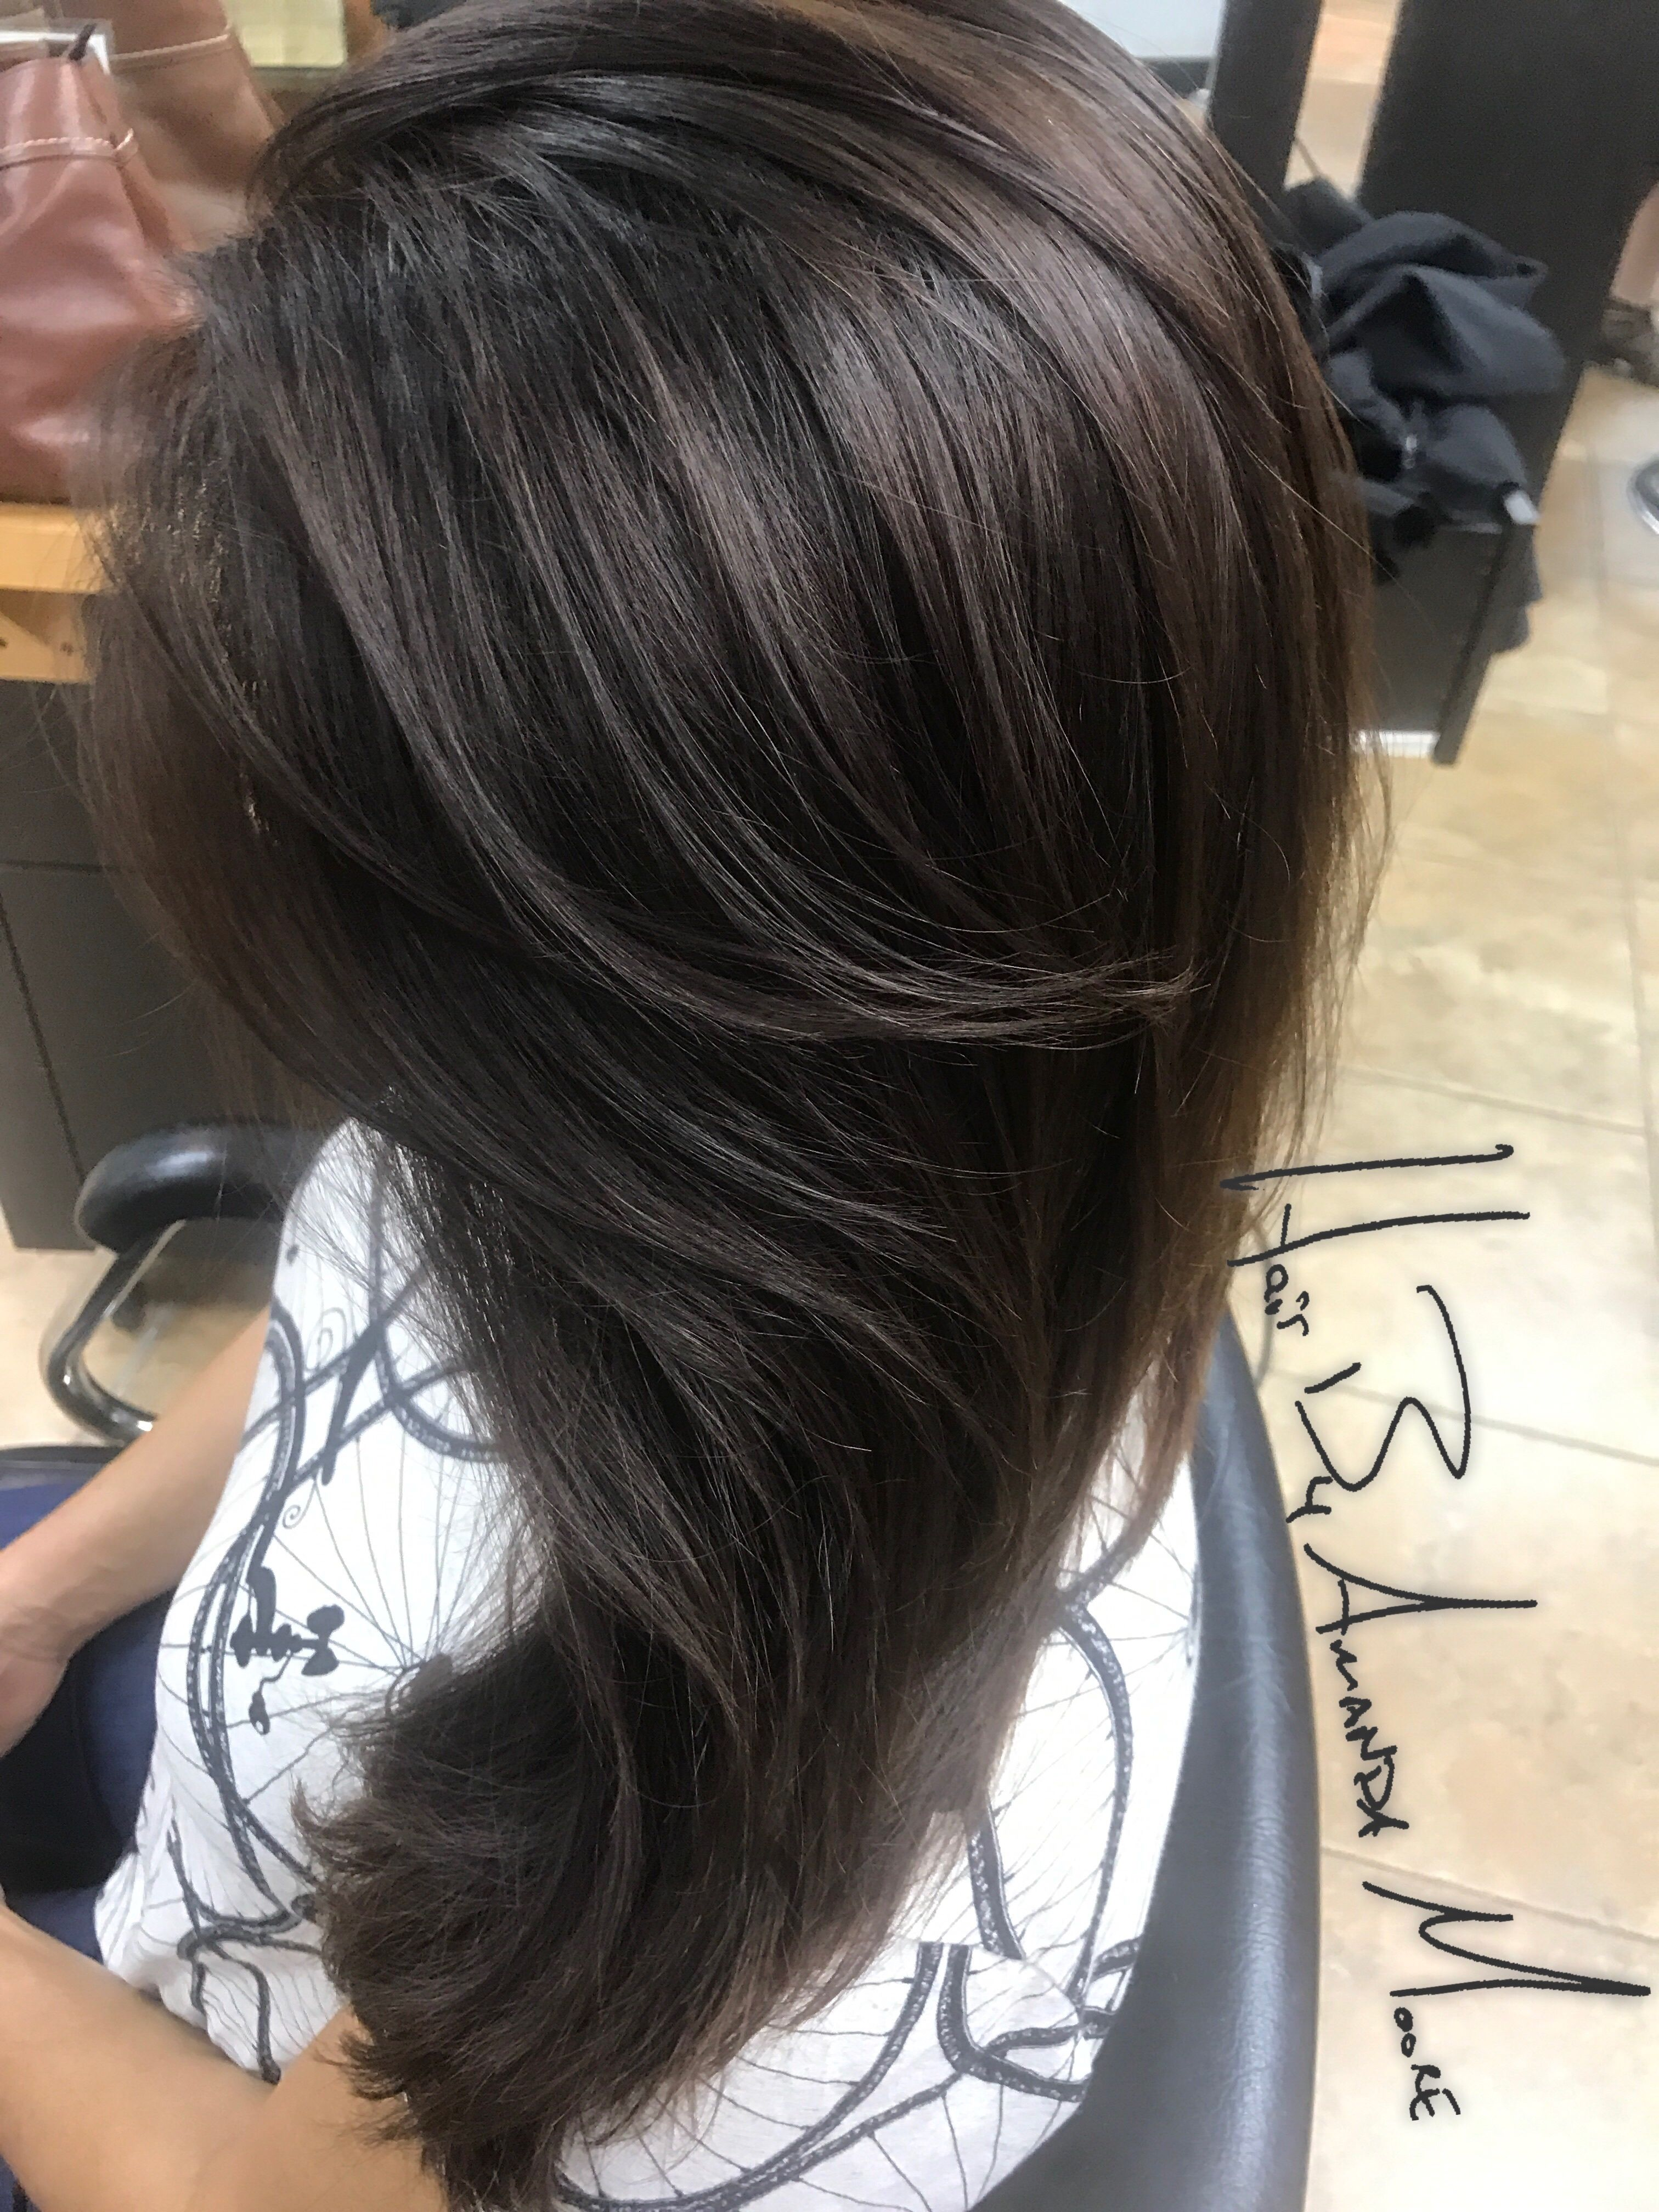 Level 5 Ash Brown With Streaks Of Level 6 Iridescent Gold Redkenobsessed Redken Behindthechair